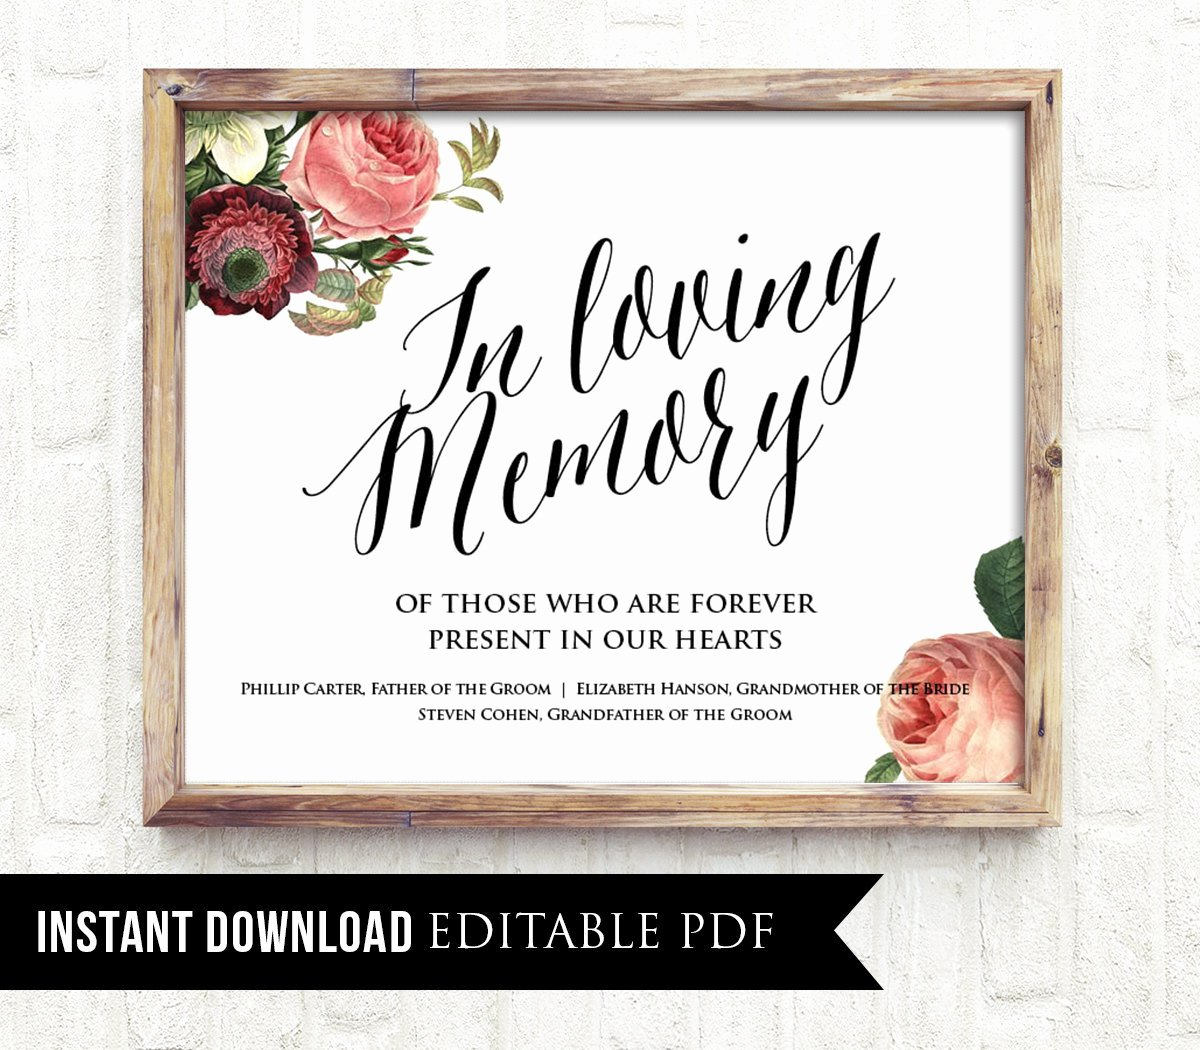 In Loving Memory Template Fresh F In Loving Memory Wedding Sign Template Editable